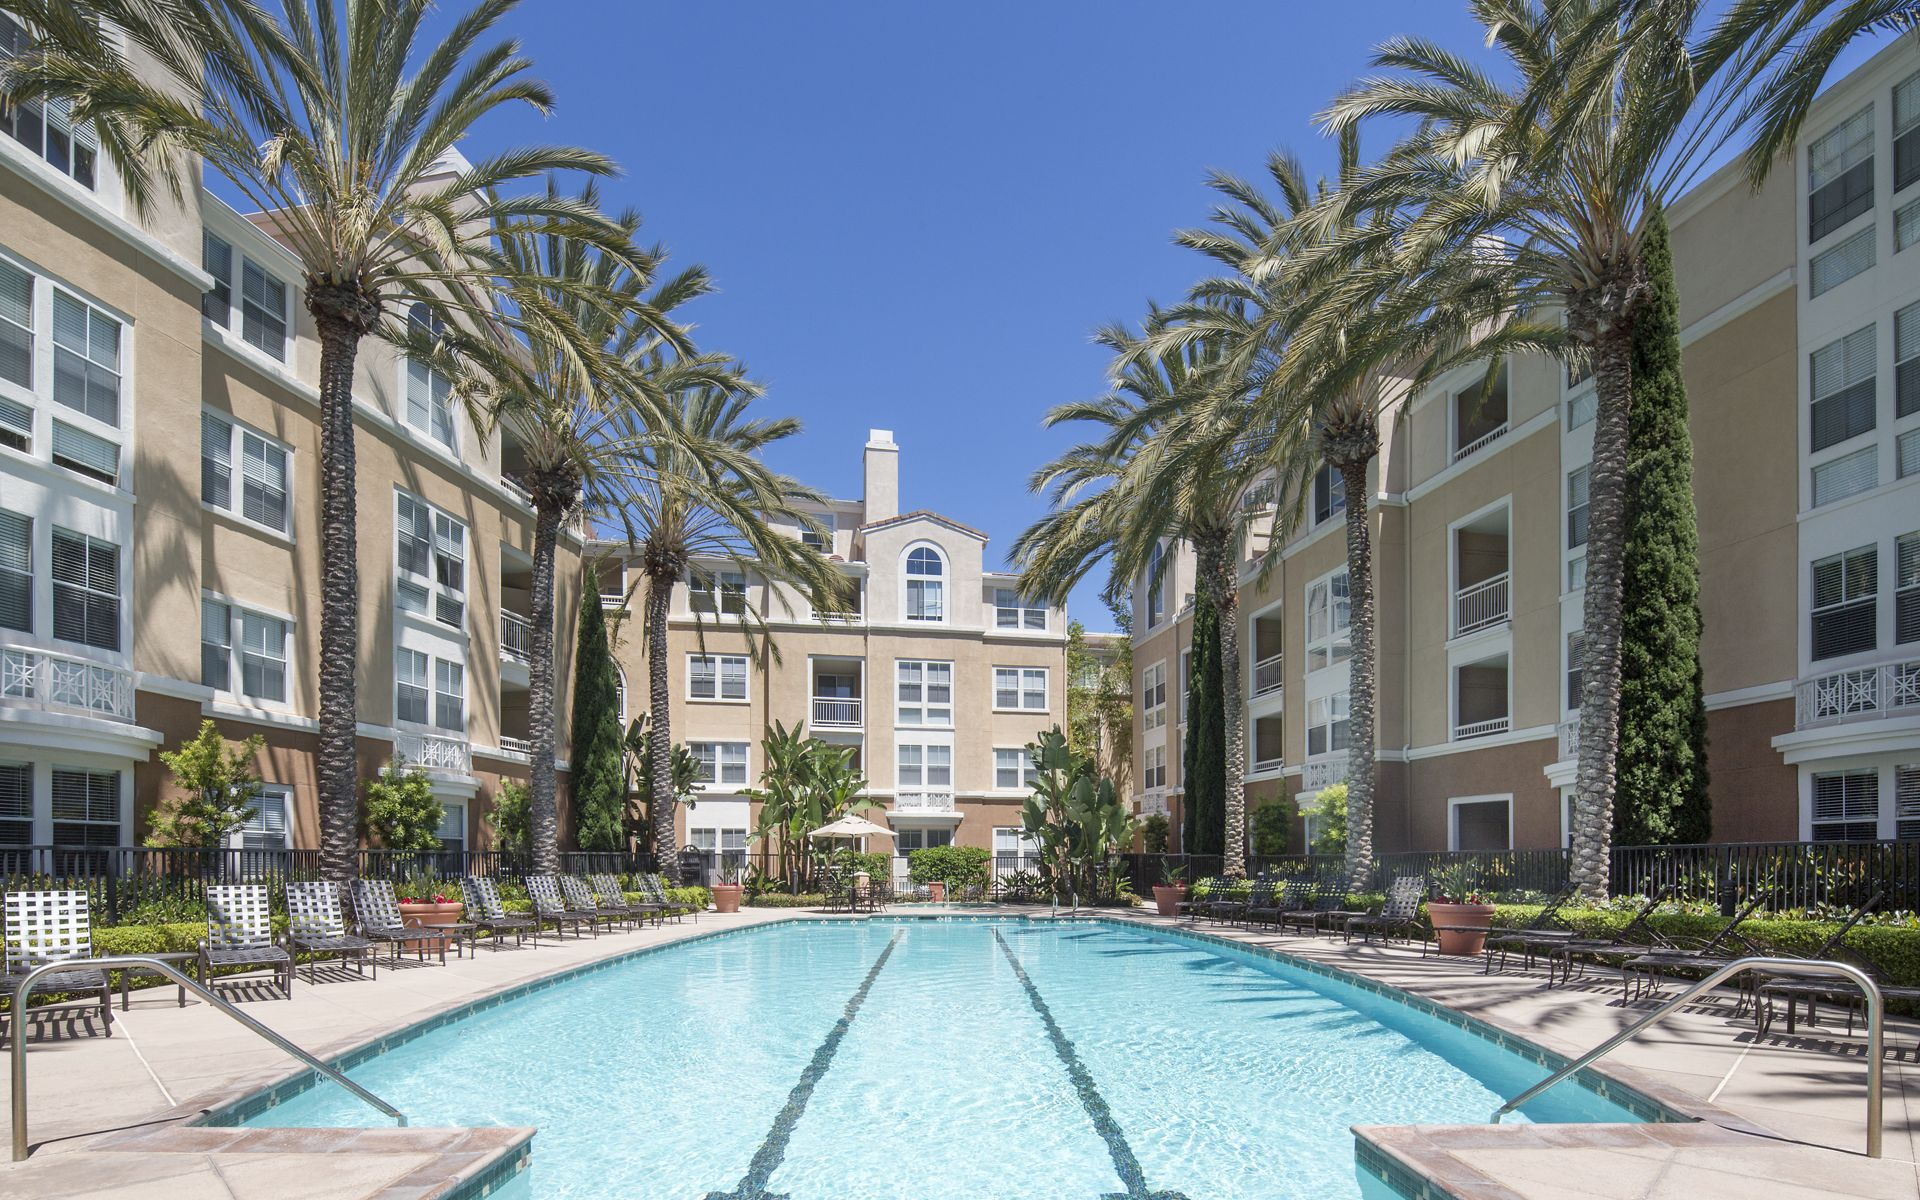 Exterior view of pool at La Jolla Palms Apartment Homes in San Diego, CA.